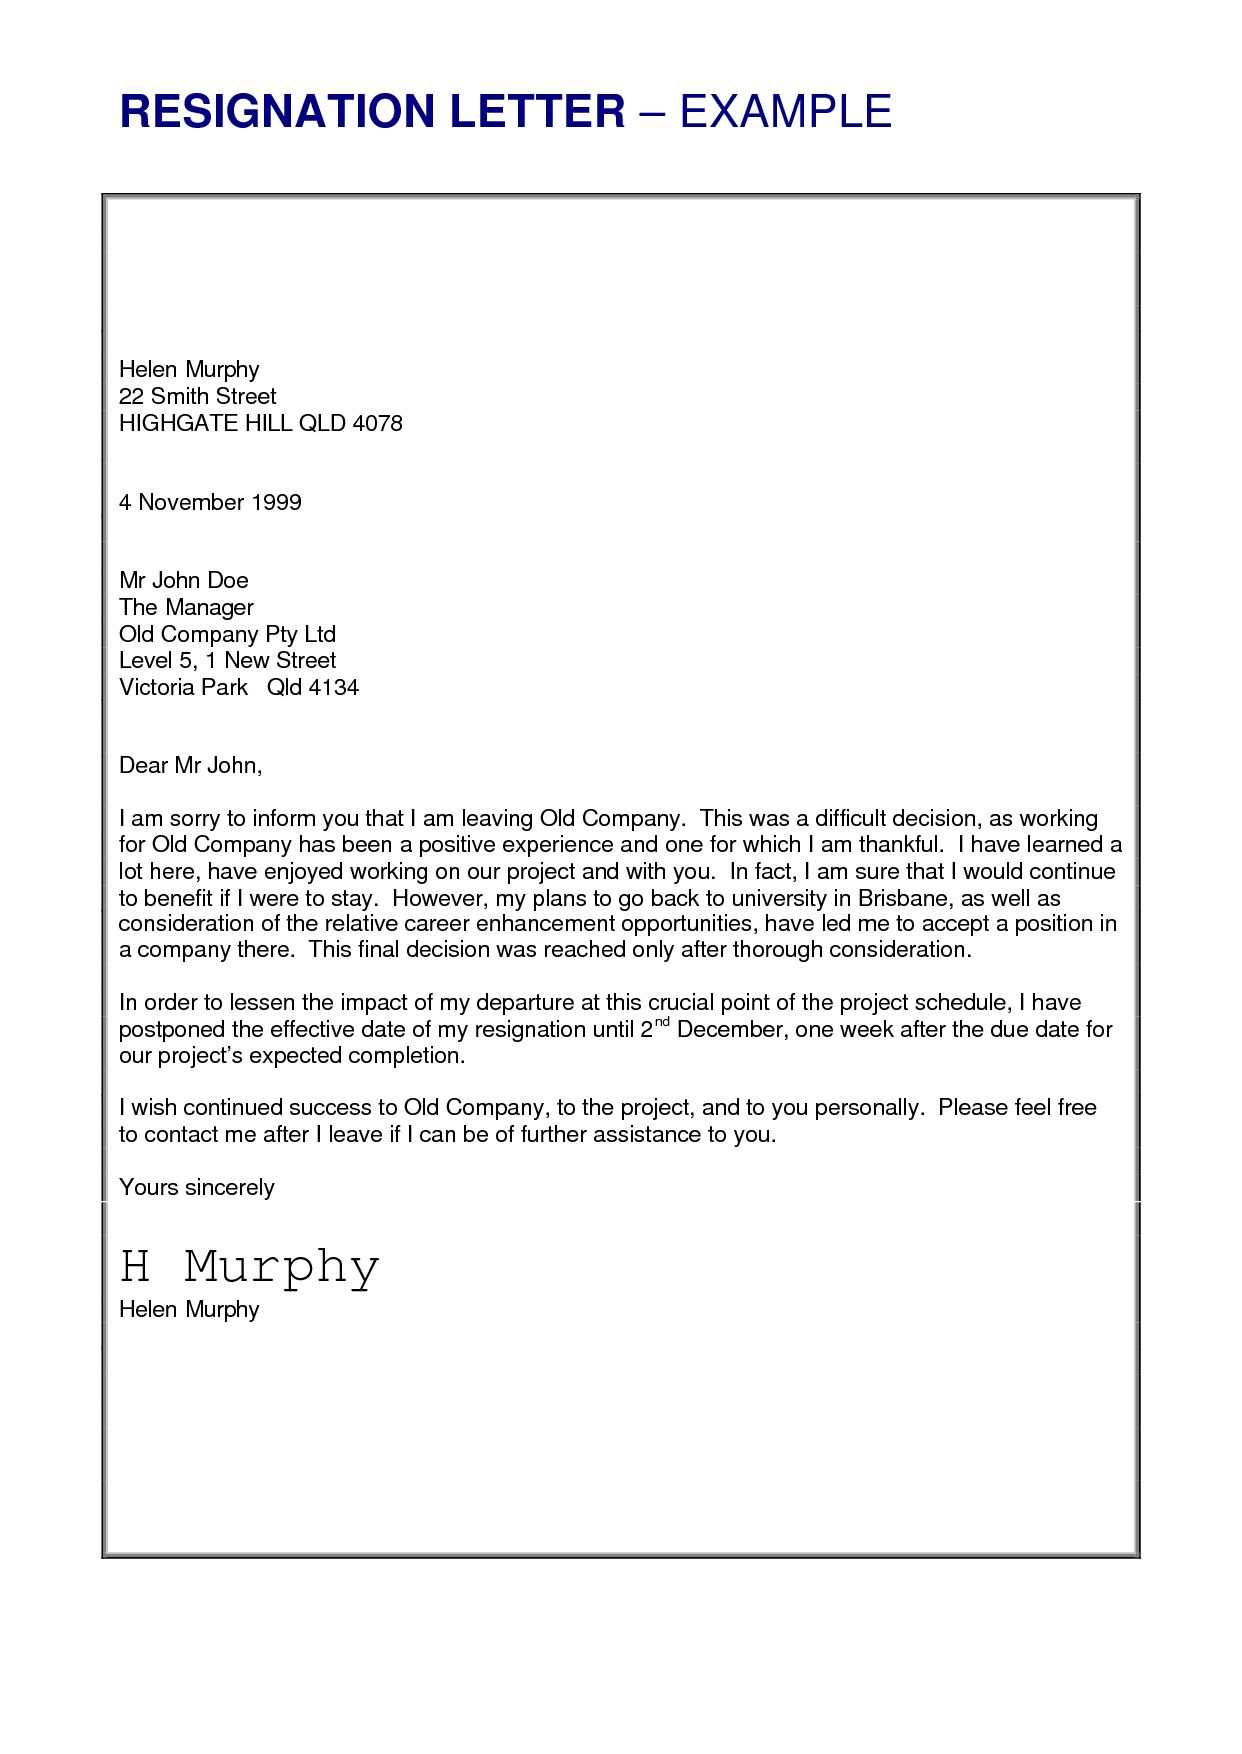 Format Letter Of Resignation As Employee New Resignation Letter Samples Fo Resignation Letter Format Resignation Letter Sample Formal Resignation Letter Sample